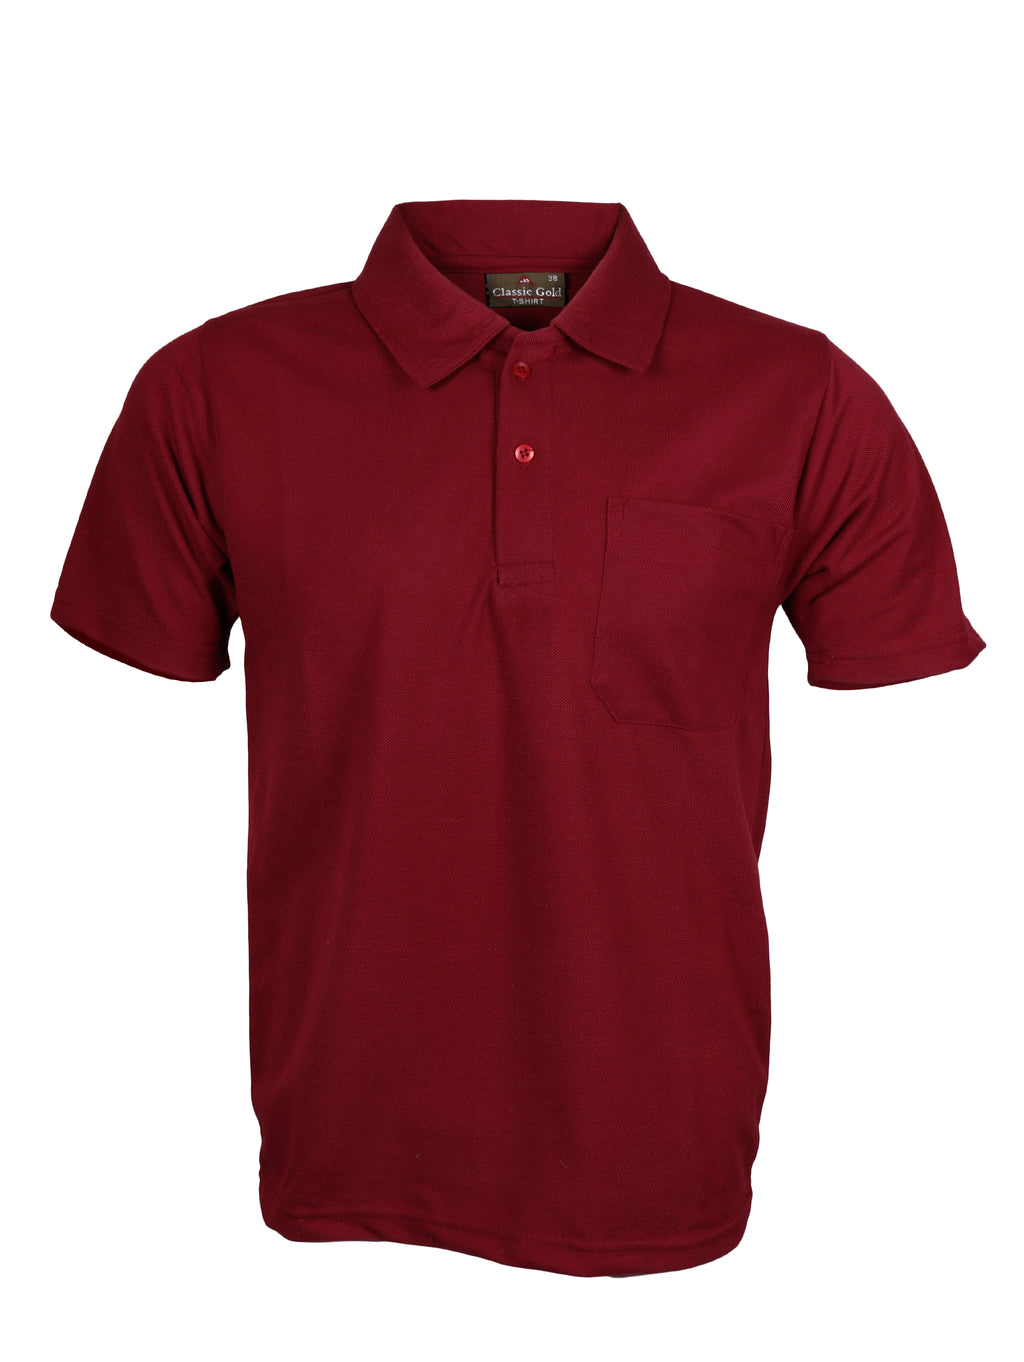 Half Sleeve Polo T-Shirt